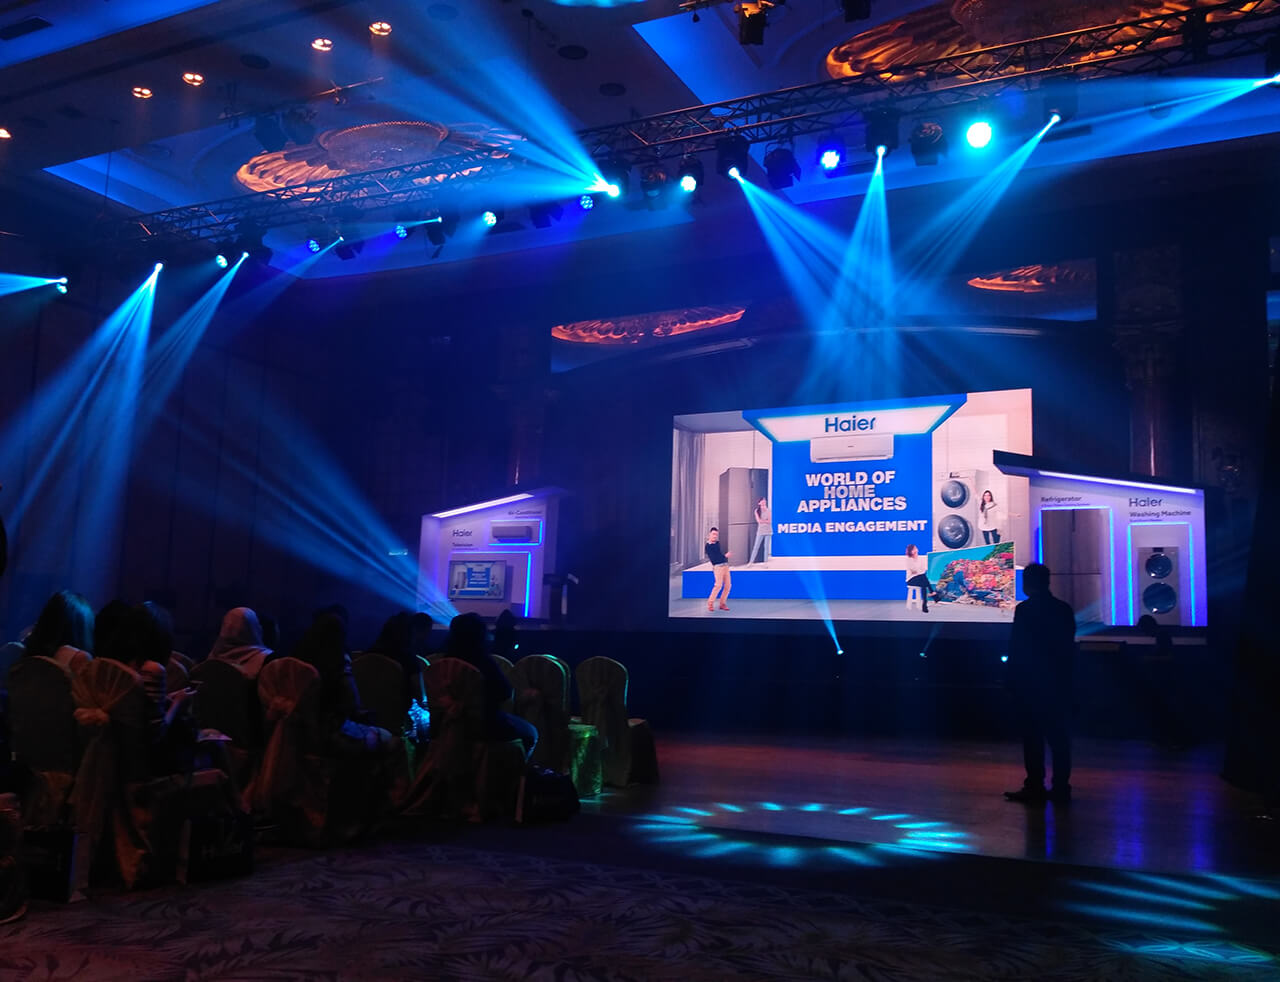 The Haier World of Home Appliances unveiling event